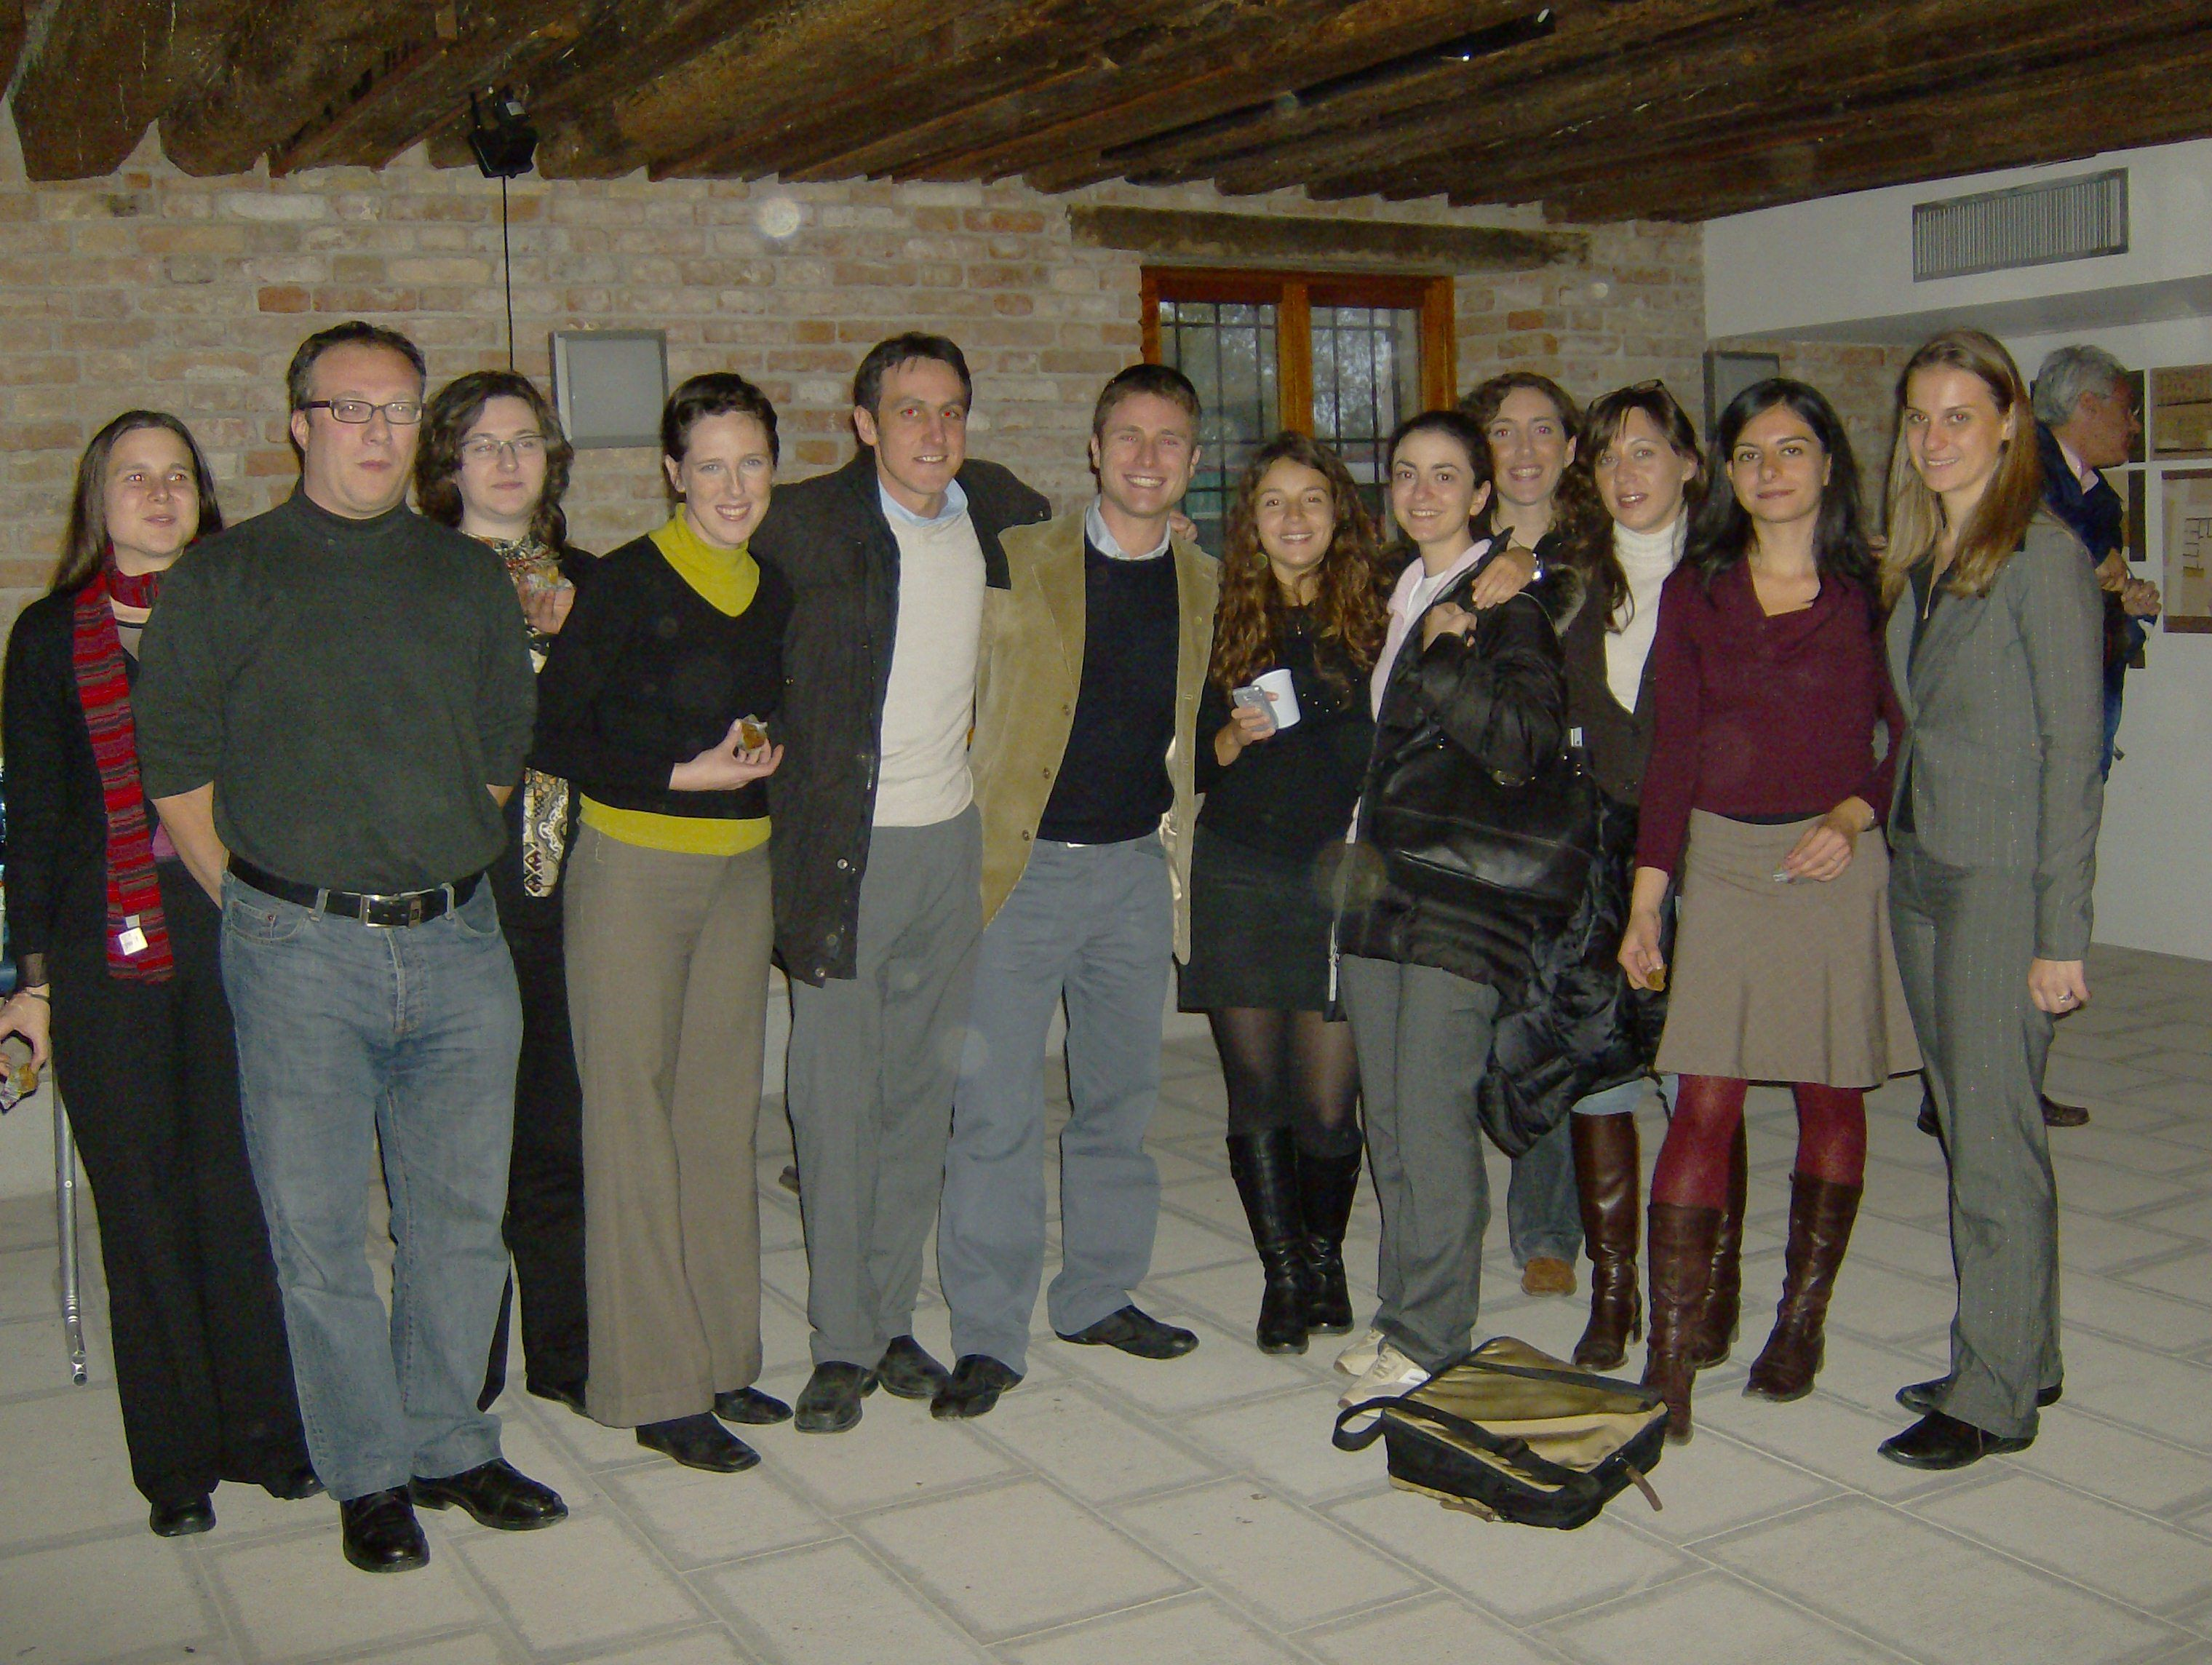 ETCAEH Students in 2006